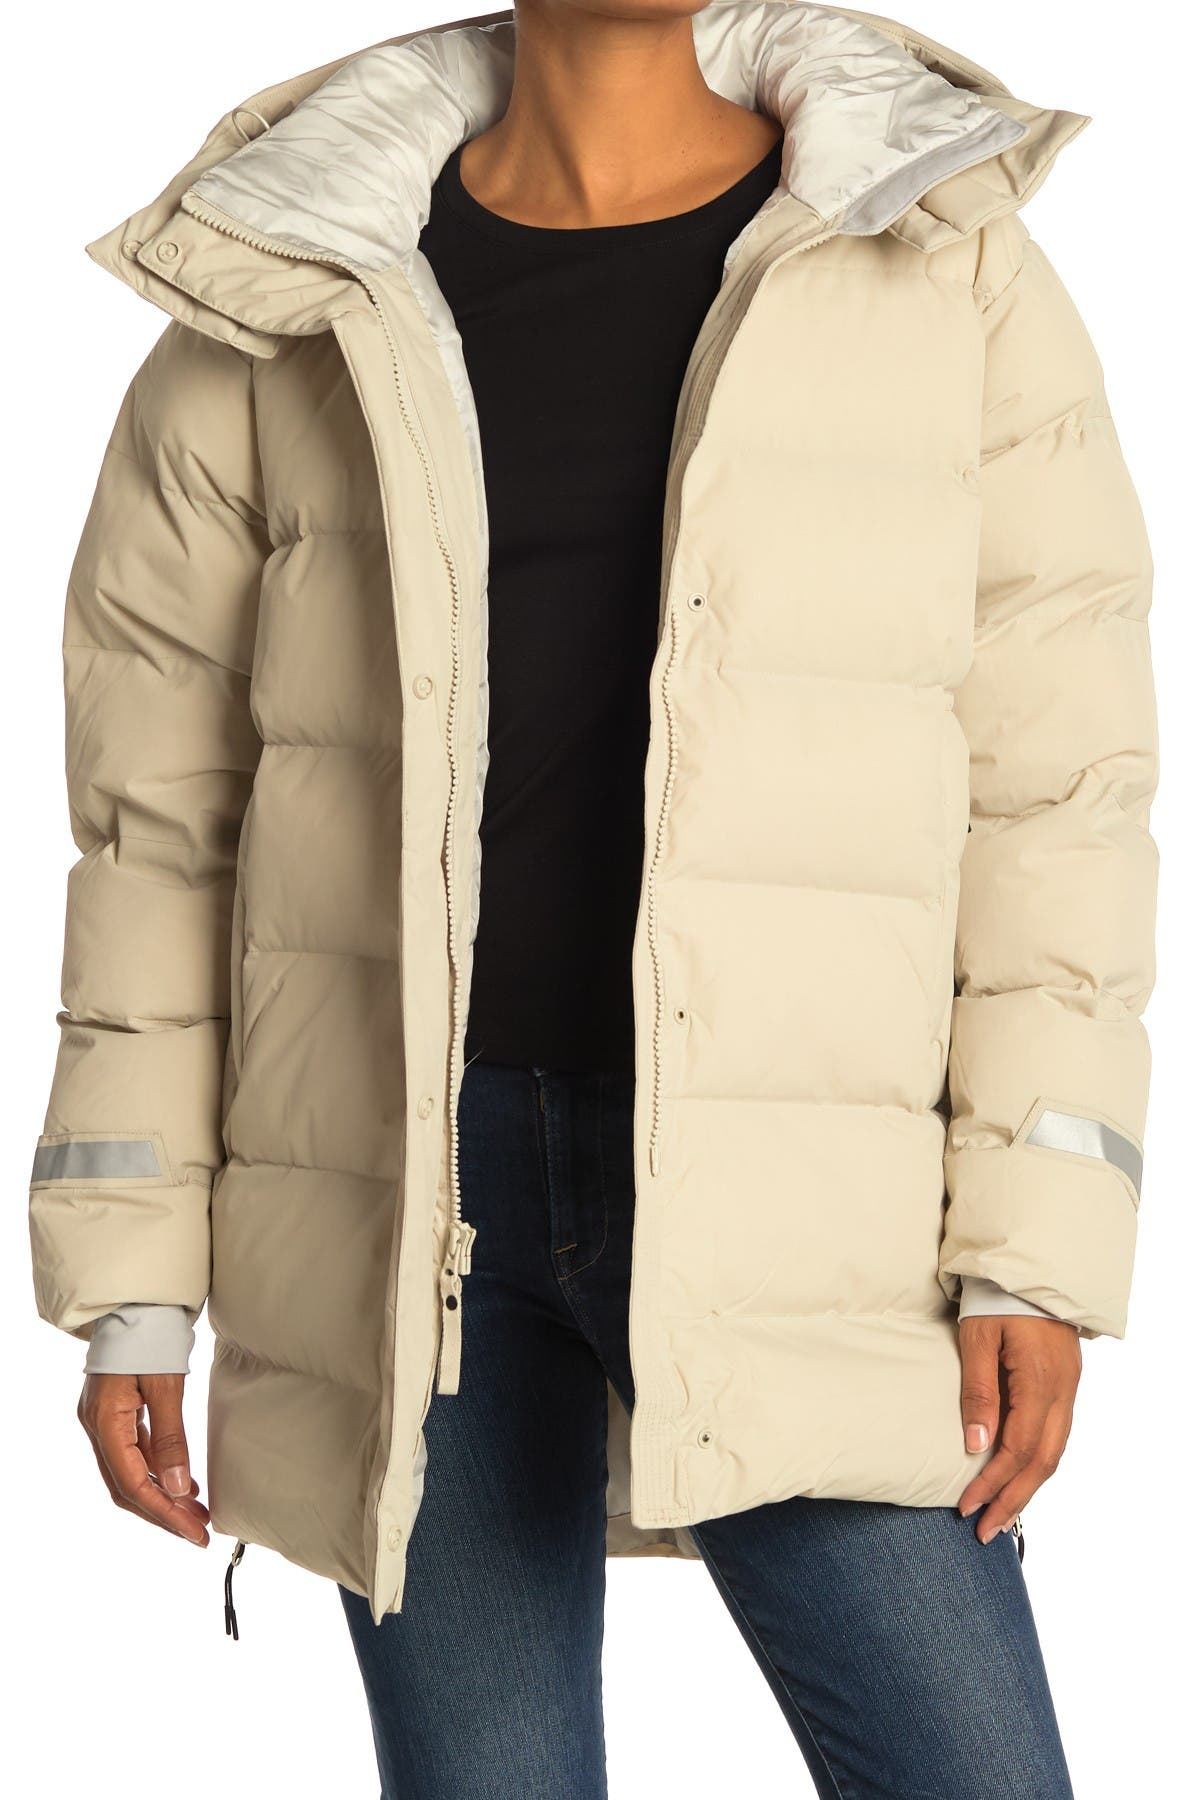 Image of Helly Hansen Aspire Quilted Puffy Parka